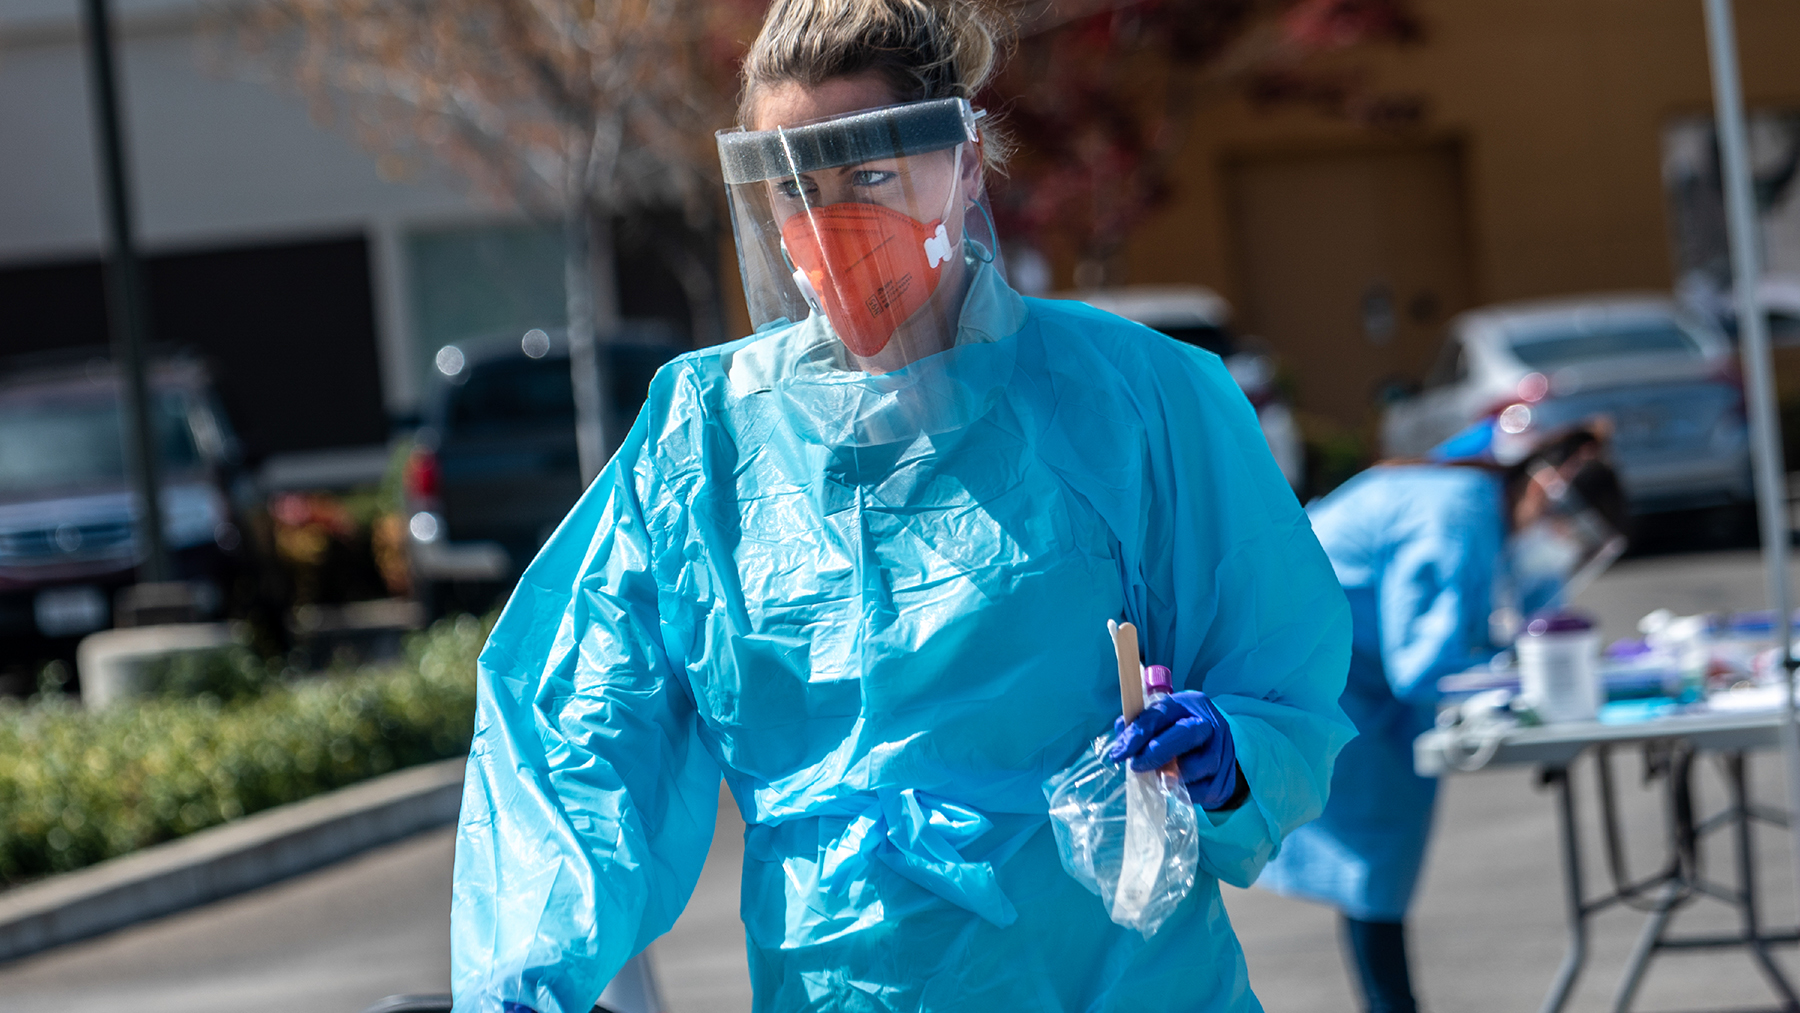 Staff with Ampla Health Care conduct Covid-19 testing at a drive-through site in Yuba City, California. The site was provided with protective gear from Direct Relief. (Photo by Renée C. Byer/ZUMA Wire)